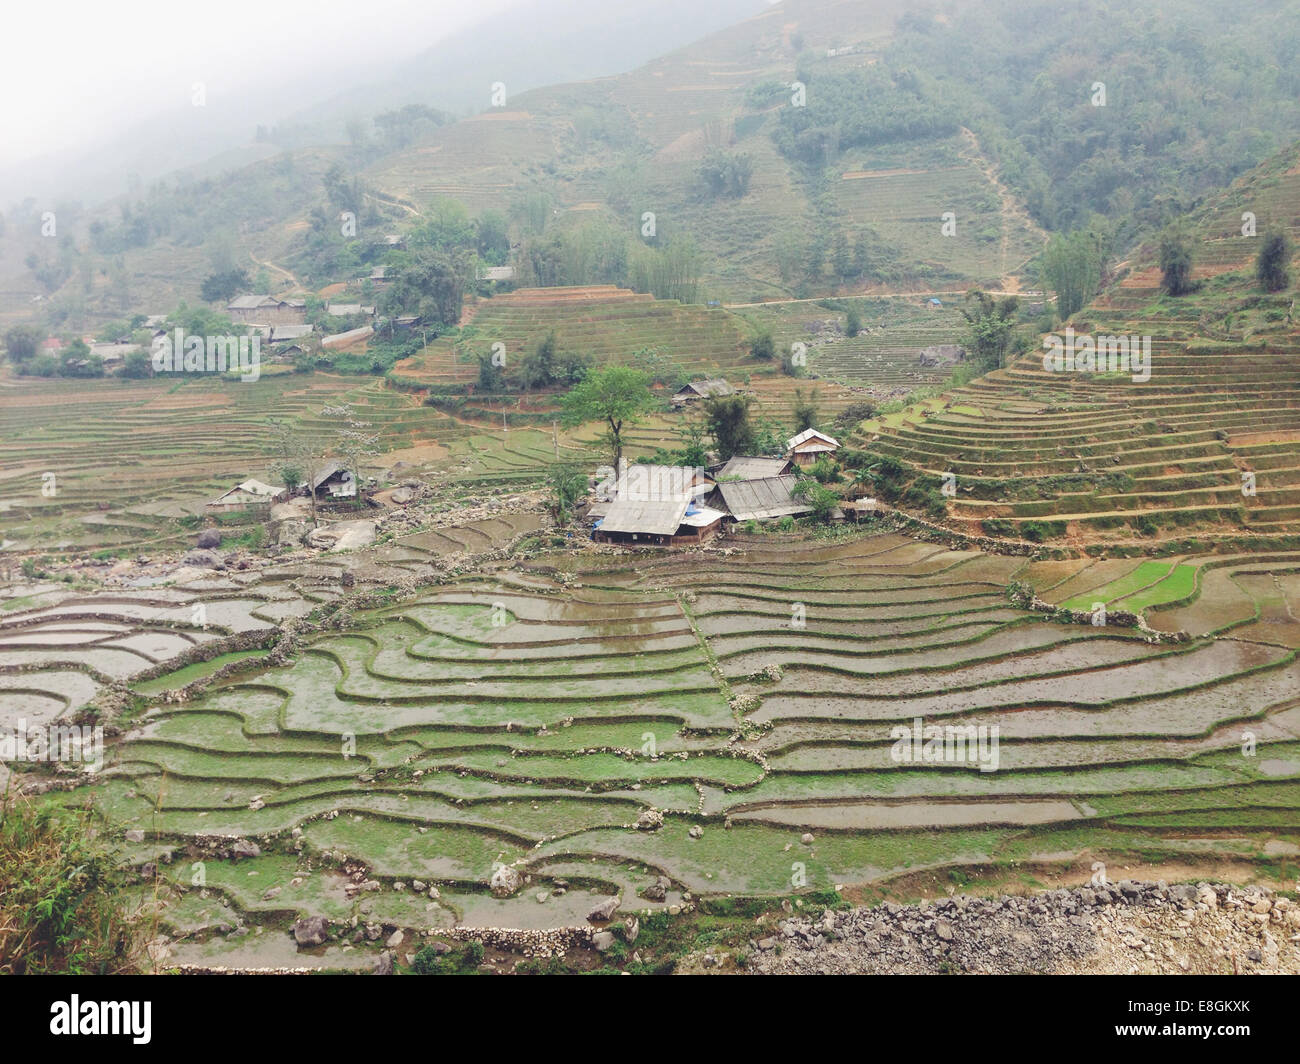 Vietnam, Lao Cai Province, Sa Pa, Landscape of typical vietnamese agriculture - Stock Image